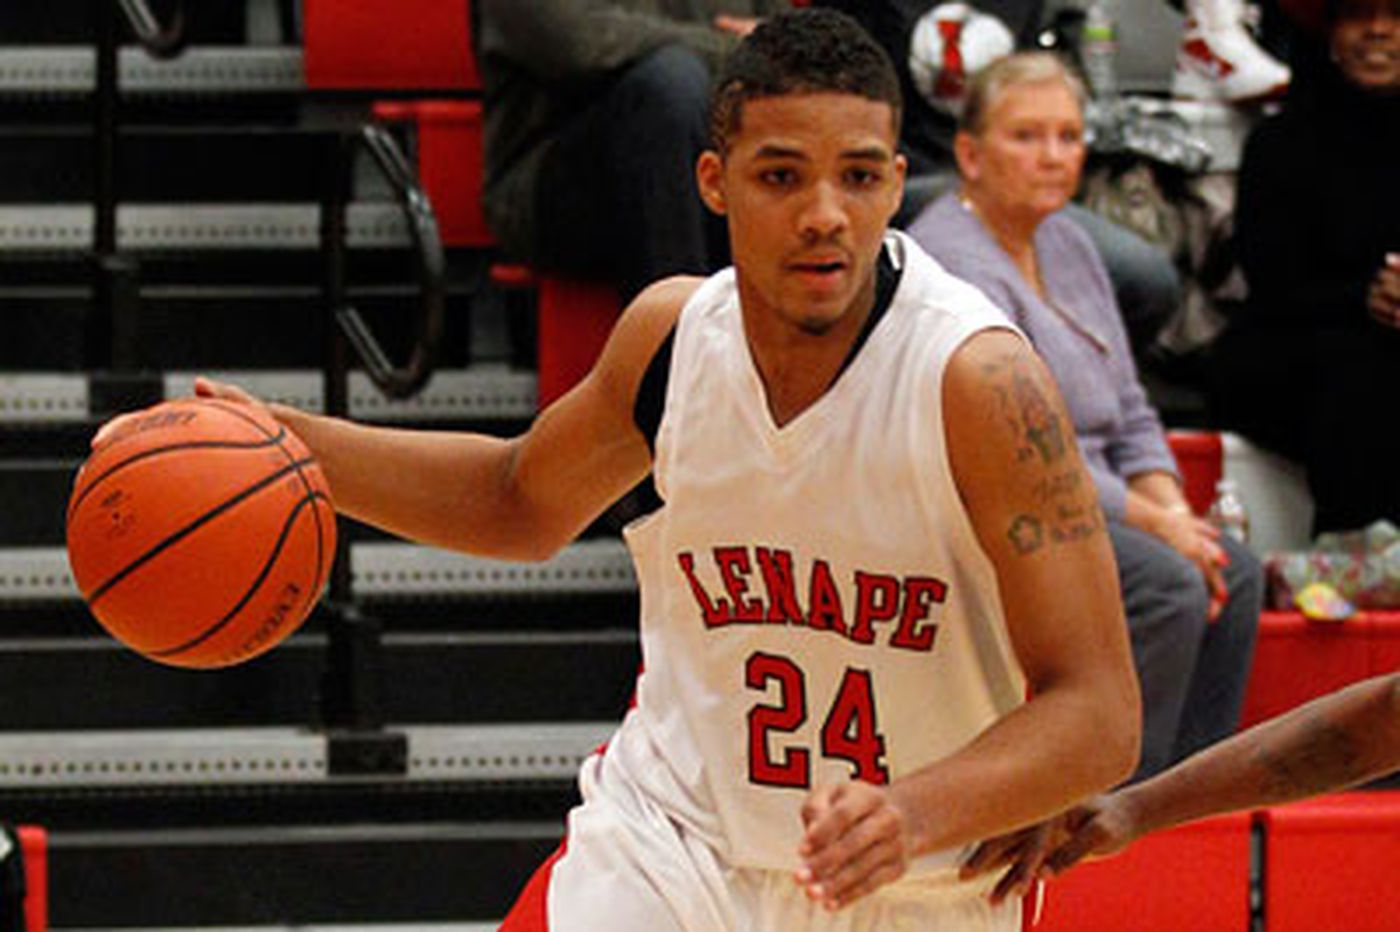 Tabu Gaither makes most of Lenape's deliberate style